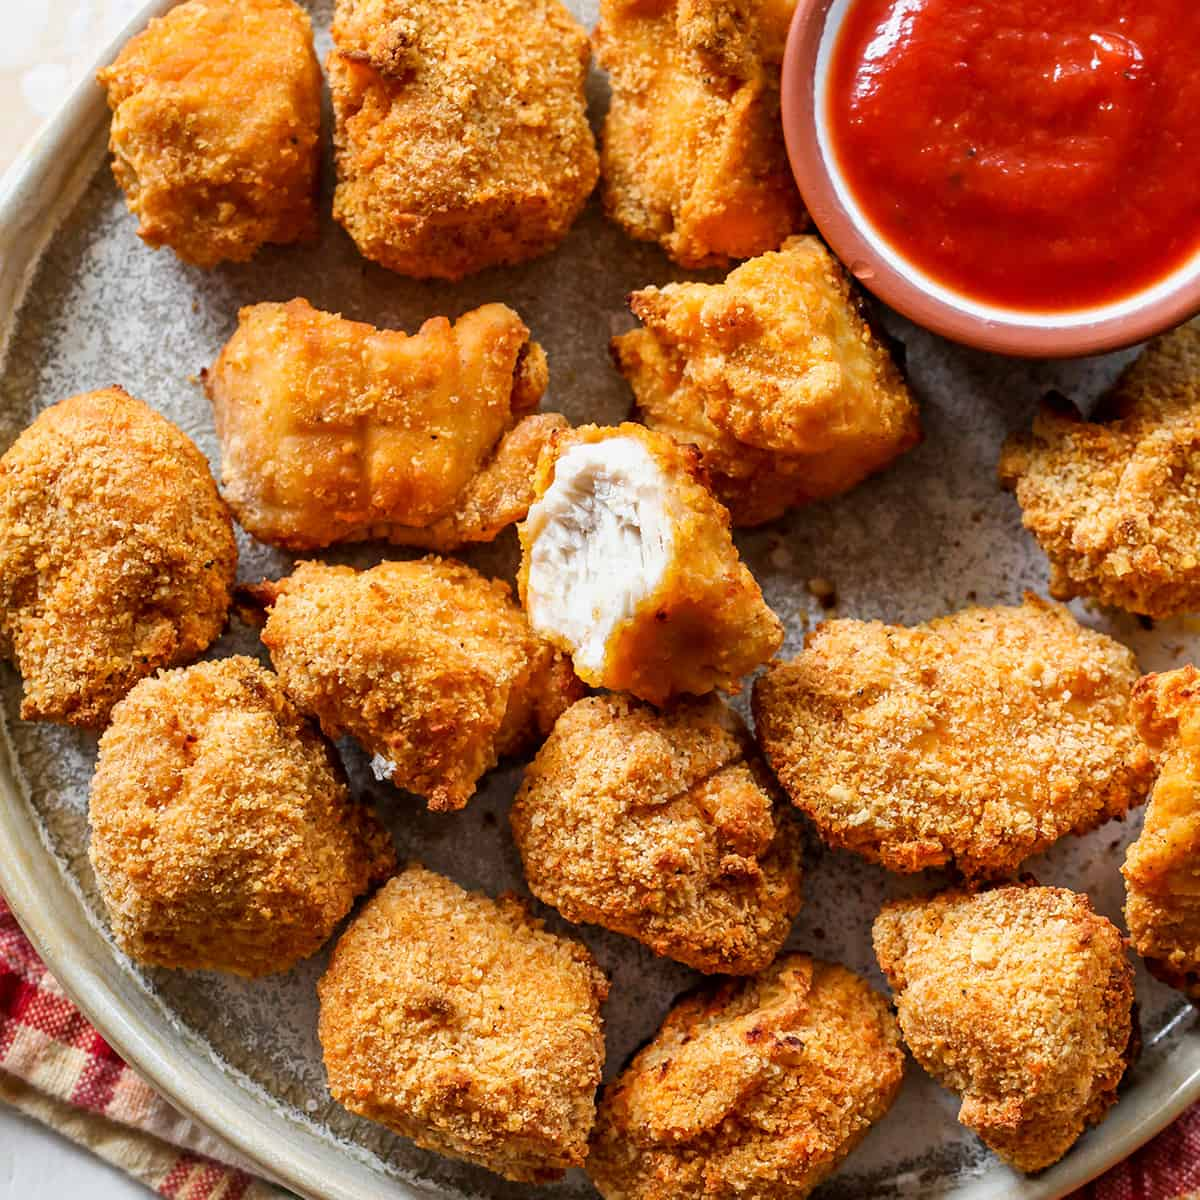 overhead view of Homemade Chicken Nuggets on a plate, one has a bite taken out of it